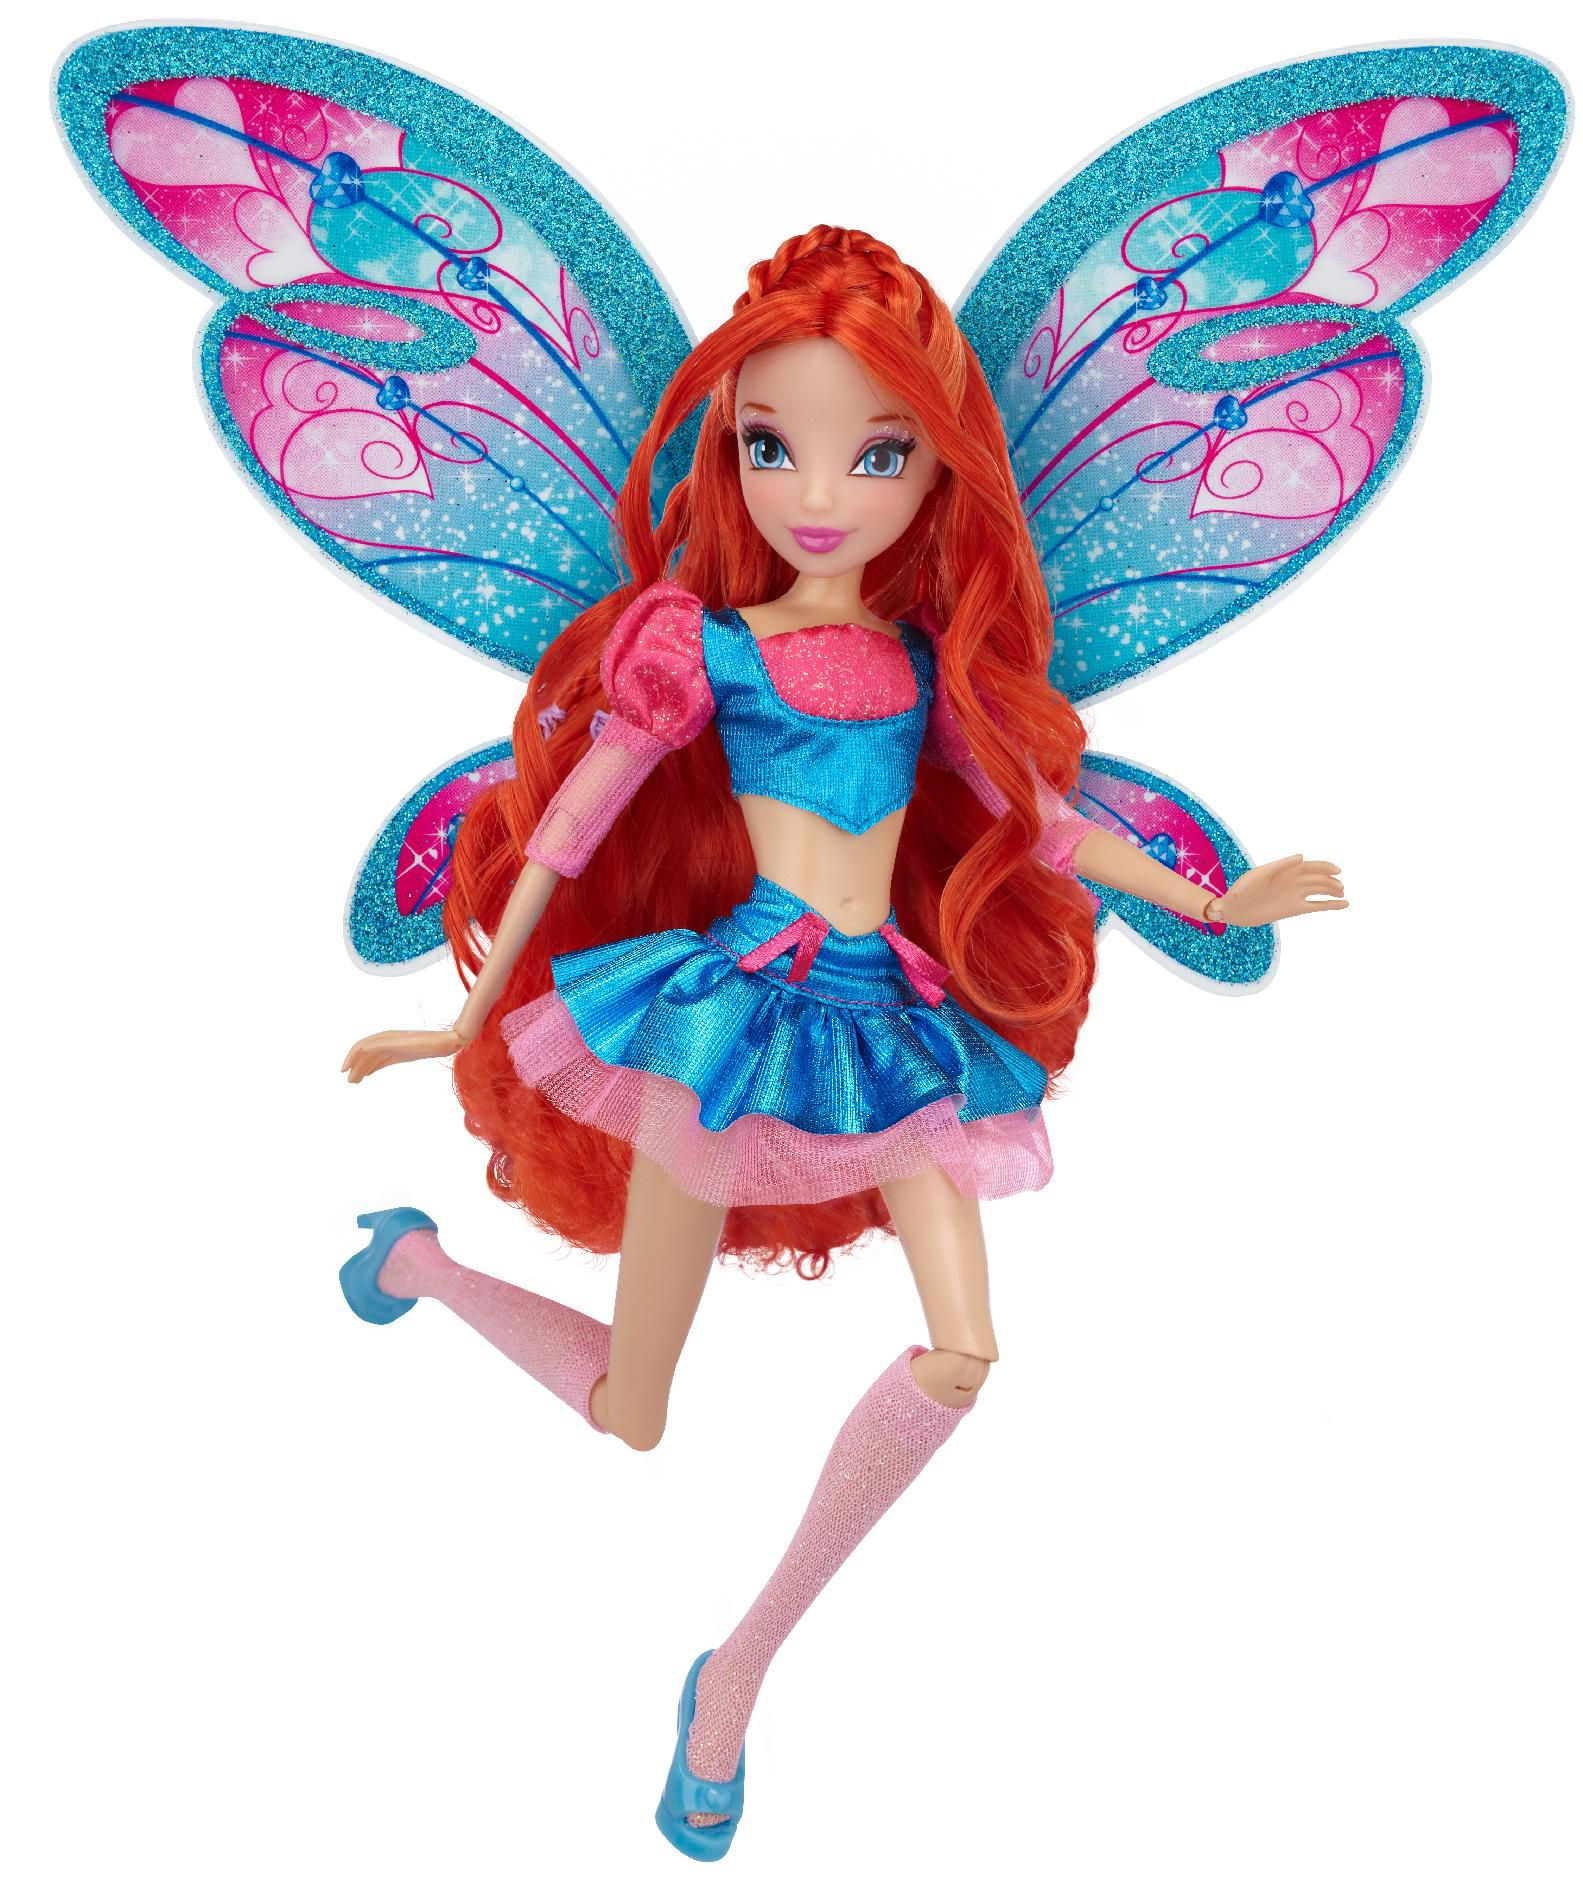 Bloom Accessoires Winx Club 11 5 Quot Deluxe Fashion Doll Boom Toys And Games